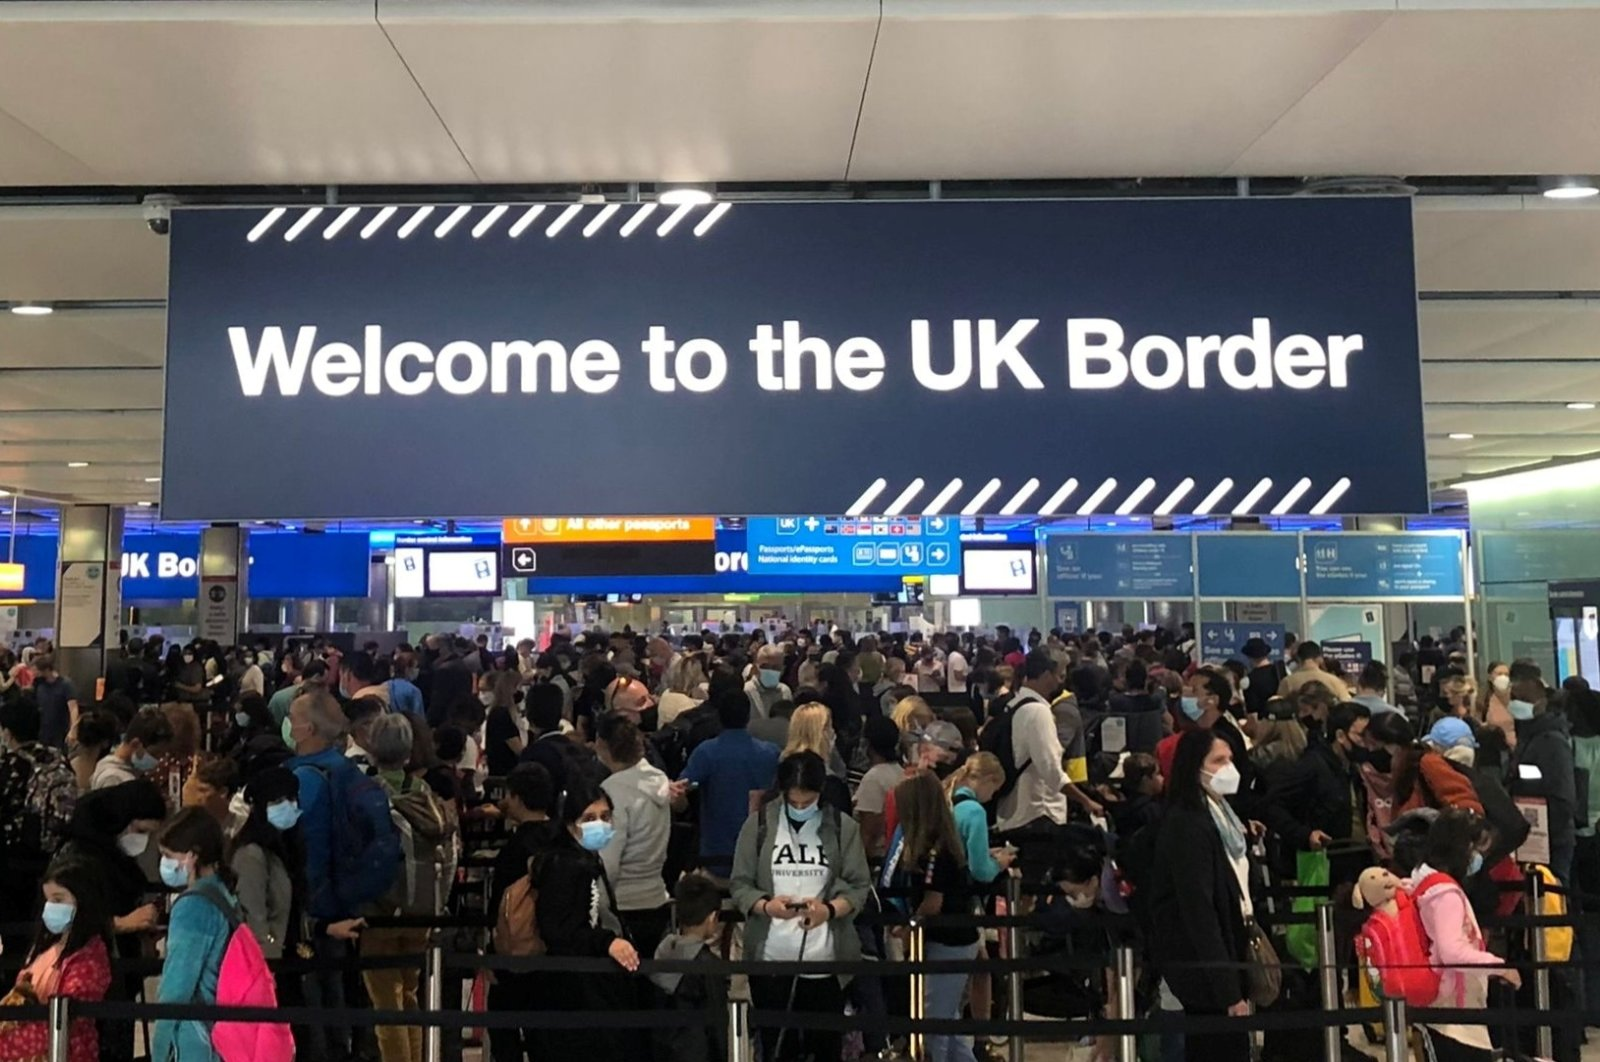 Queues of people wait in line at U.K. citizens arrivals at Heathrow Airport in London, Britain, Sept. 1, 2021. (Reuters Photo)